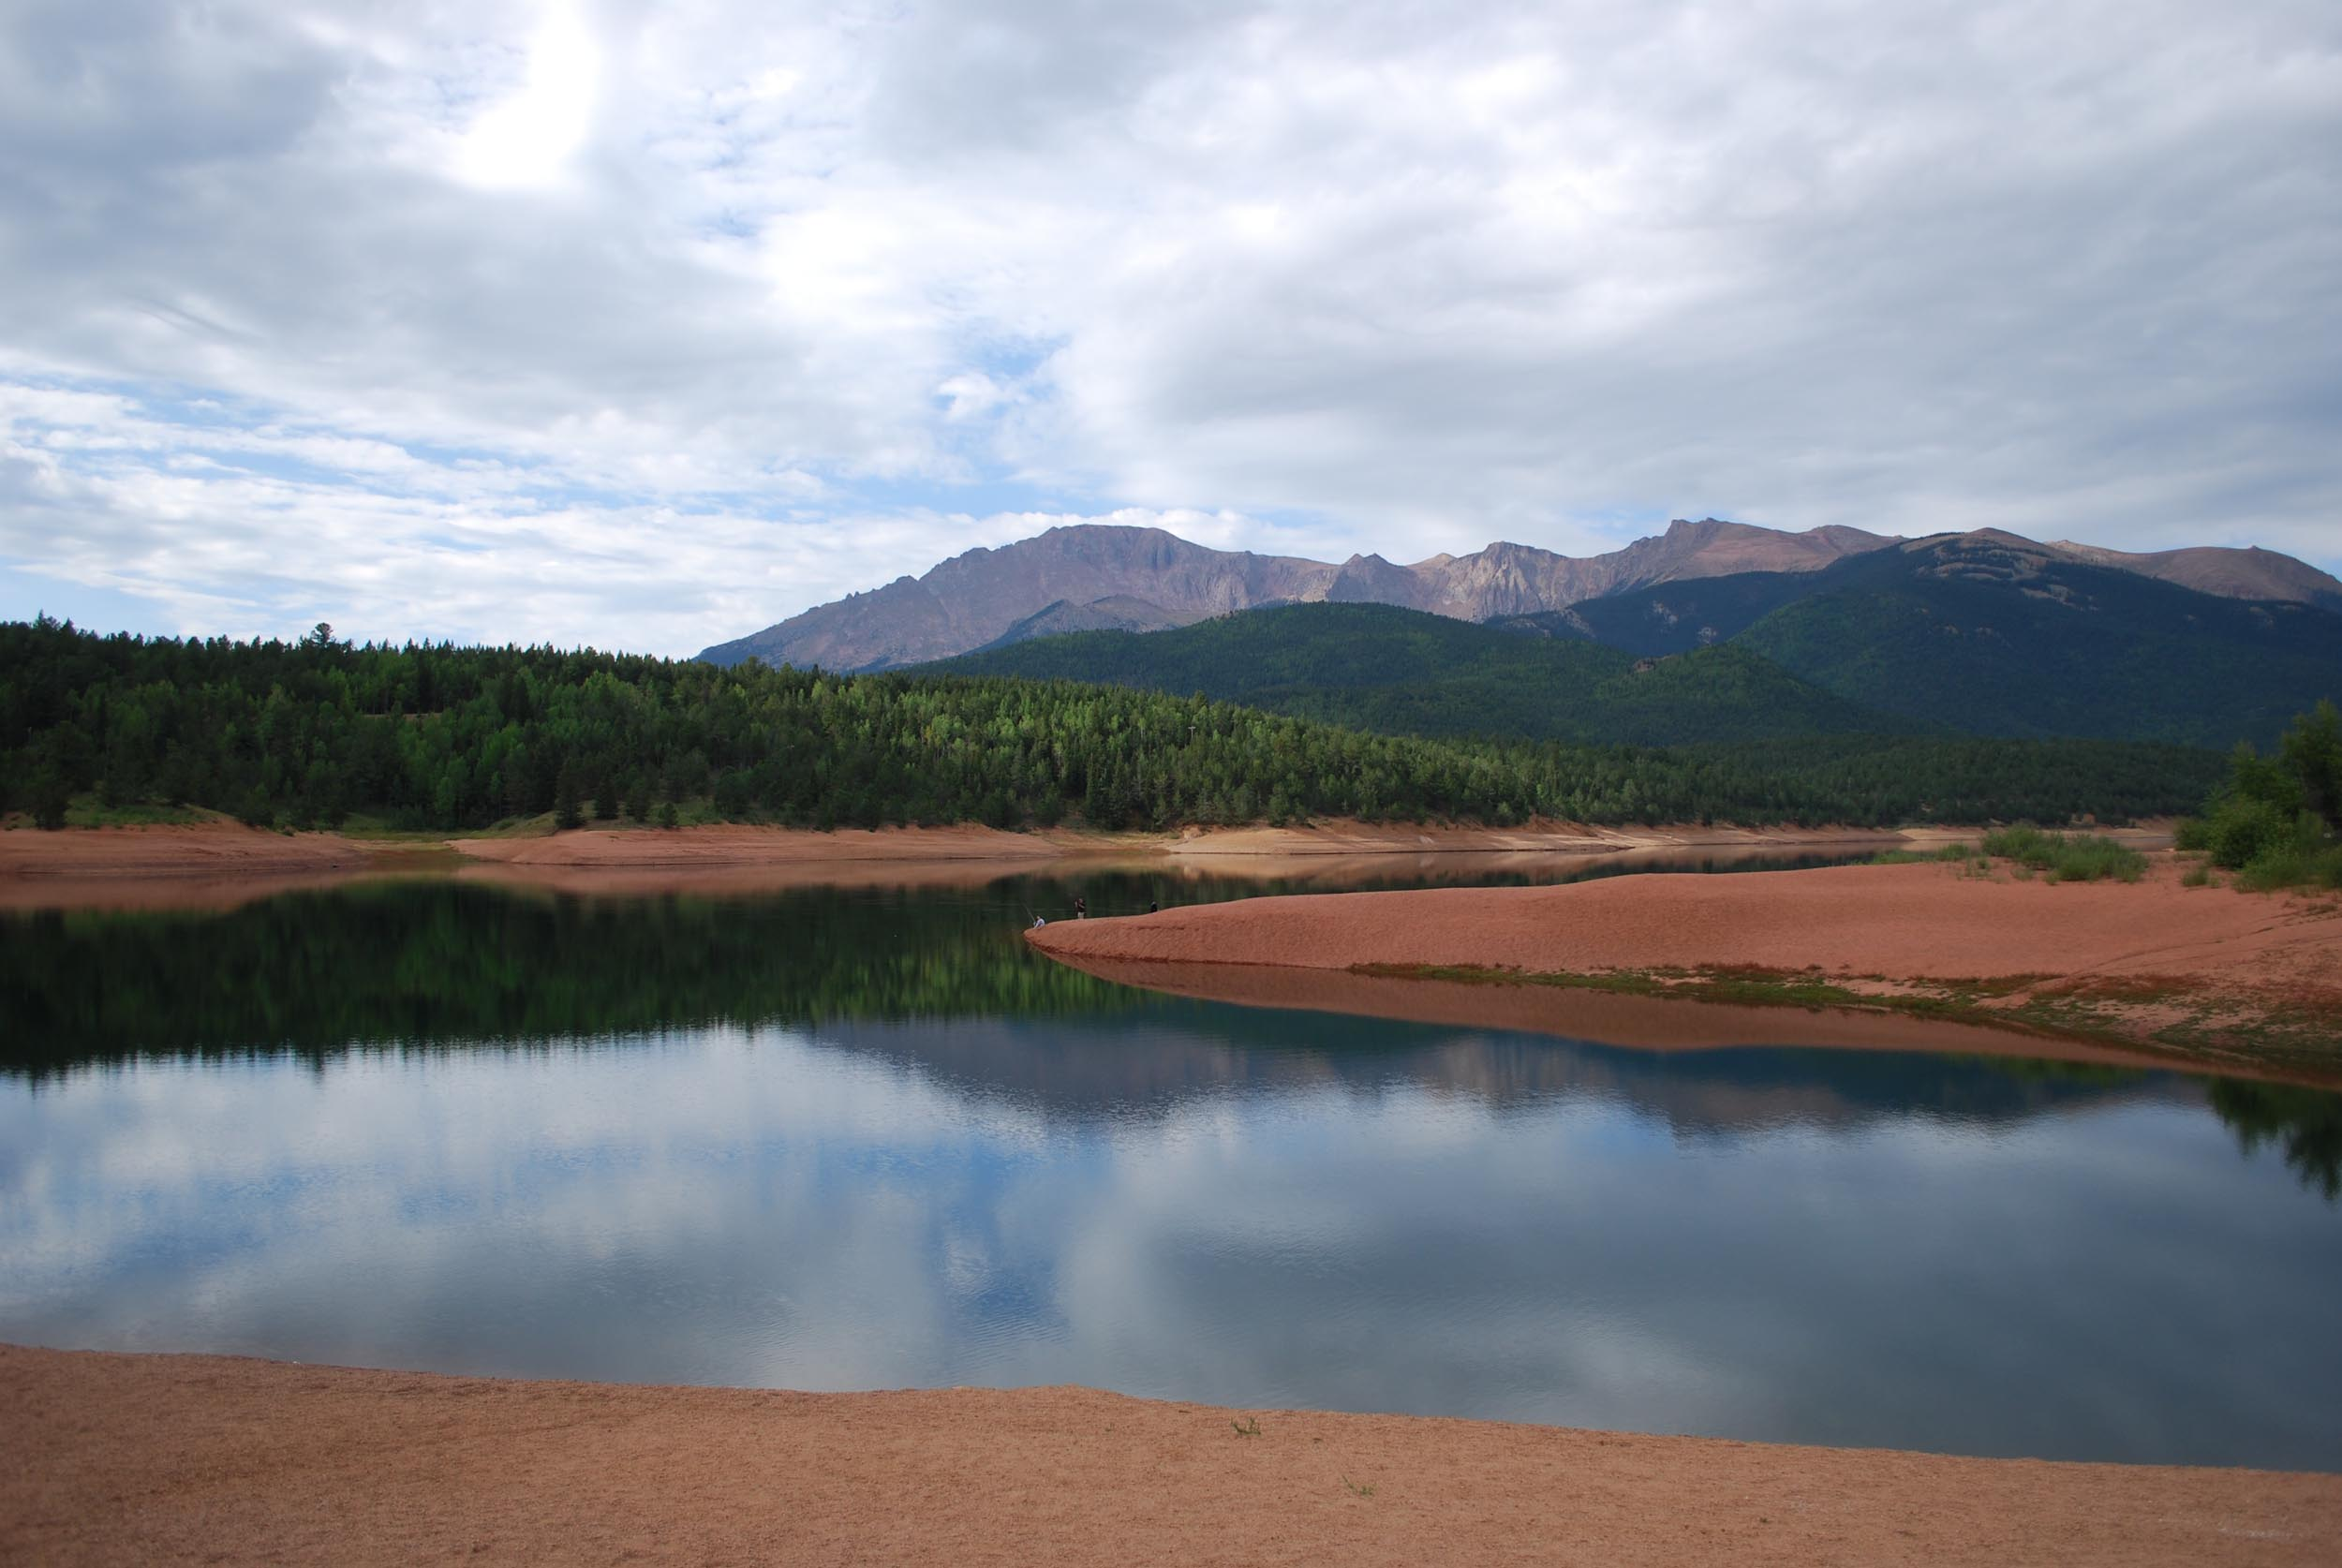 Photo by Zach Doty, digital marketing professional, of a Colorado lake.